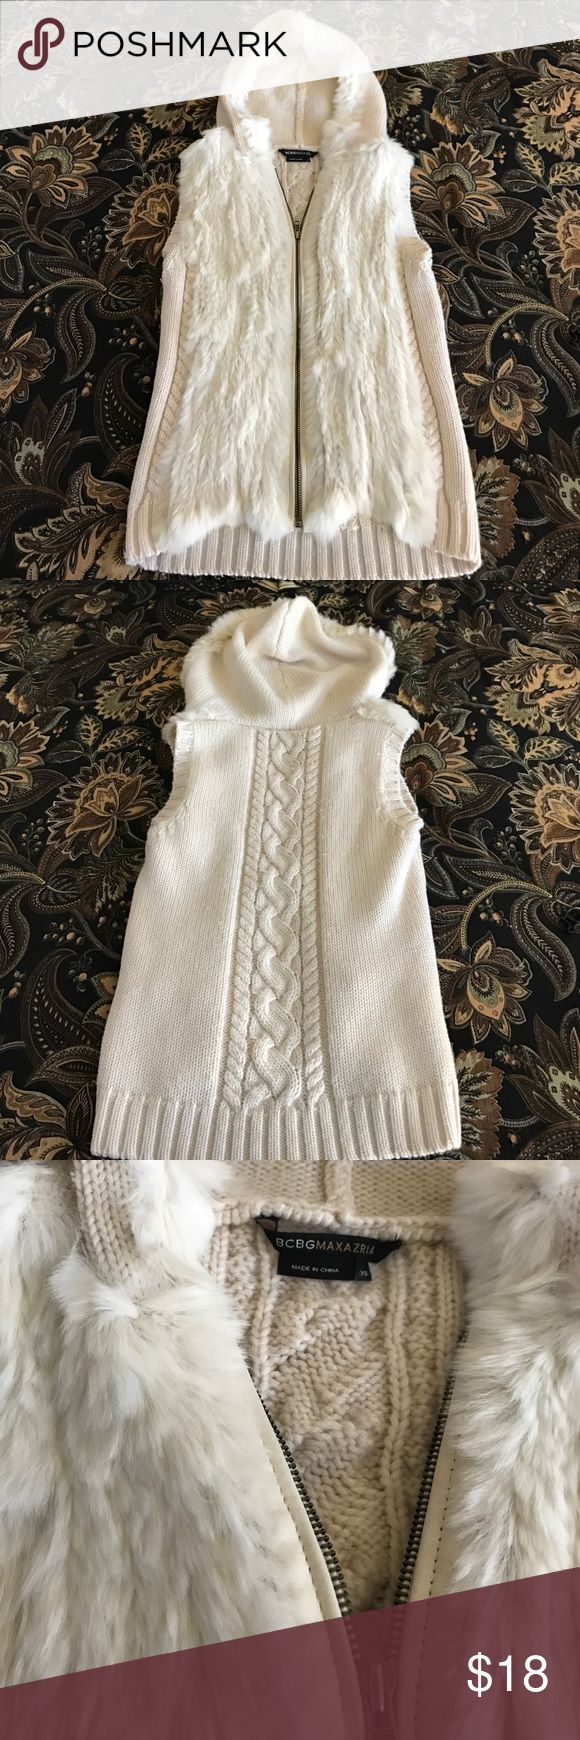 Cute BCBGMAXARIA vest 🛍🛍🛍 Soft and cozy ! Cream color with fur on front !! Zip up with side pockets 🛍🛍 BCBGMaxAzria Jackets & Coats Vests